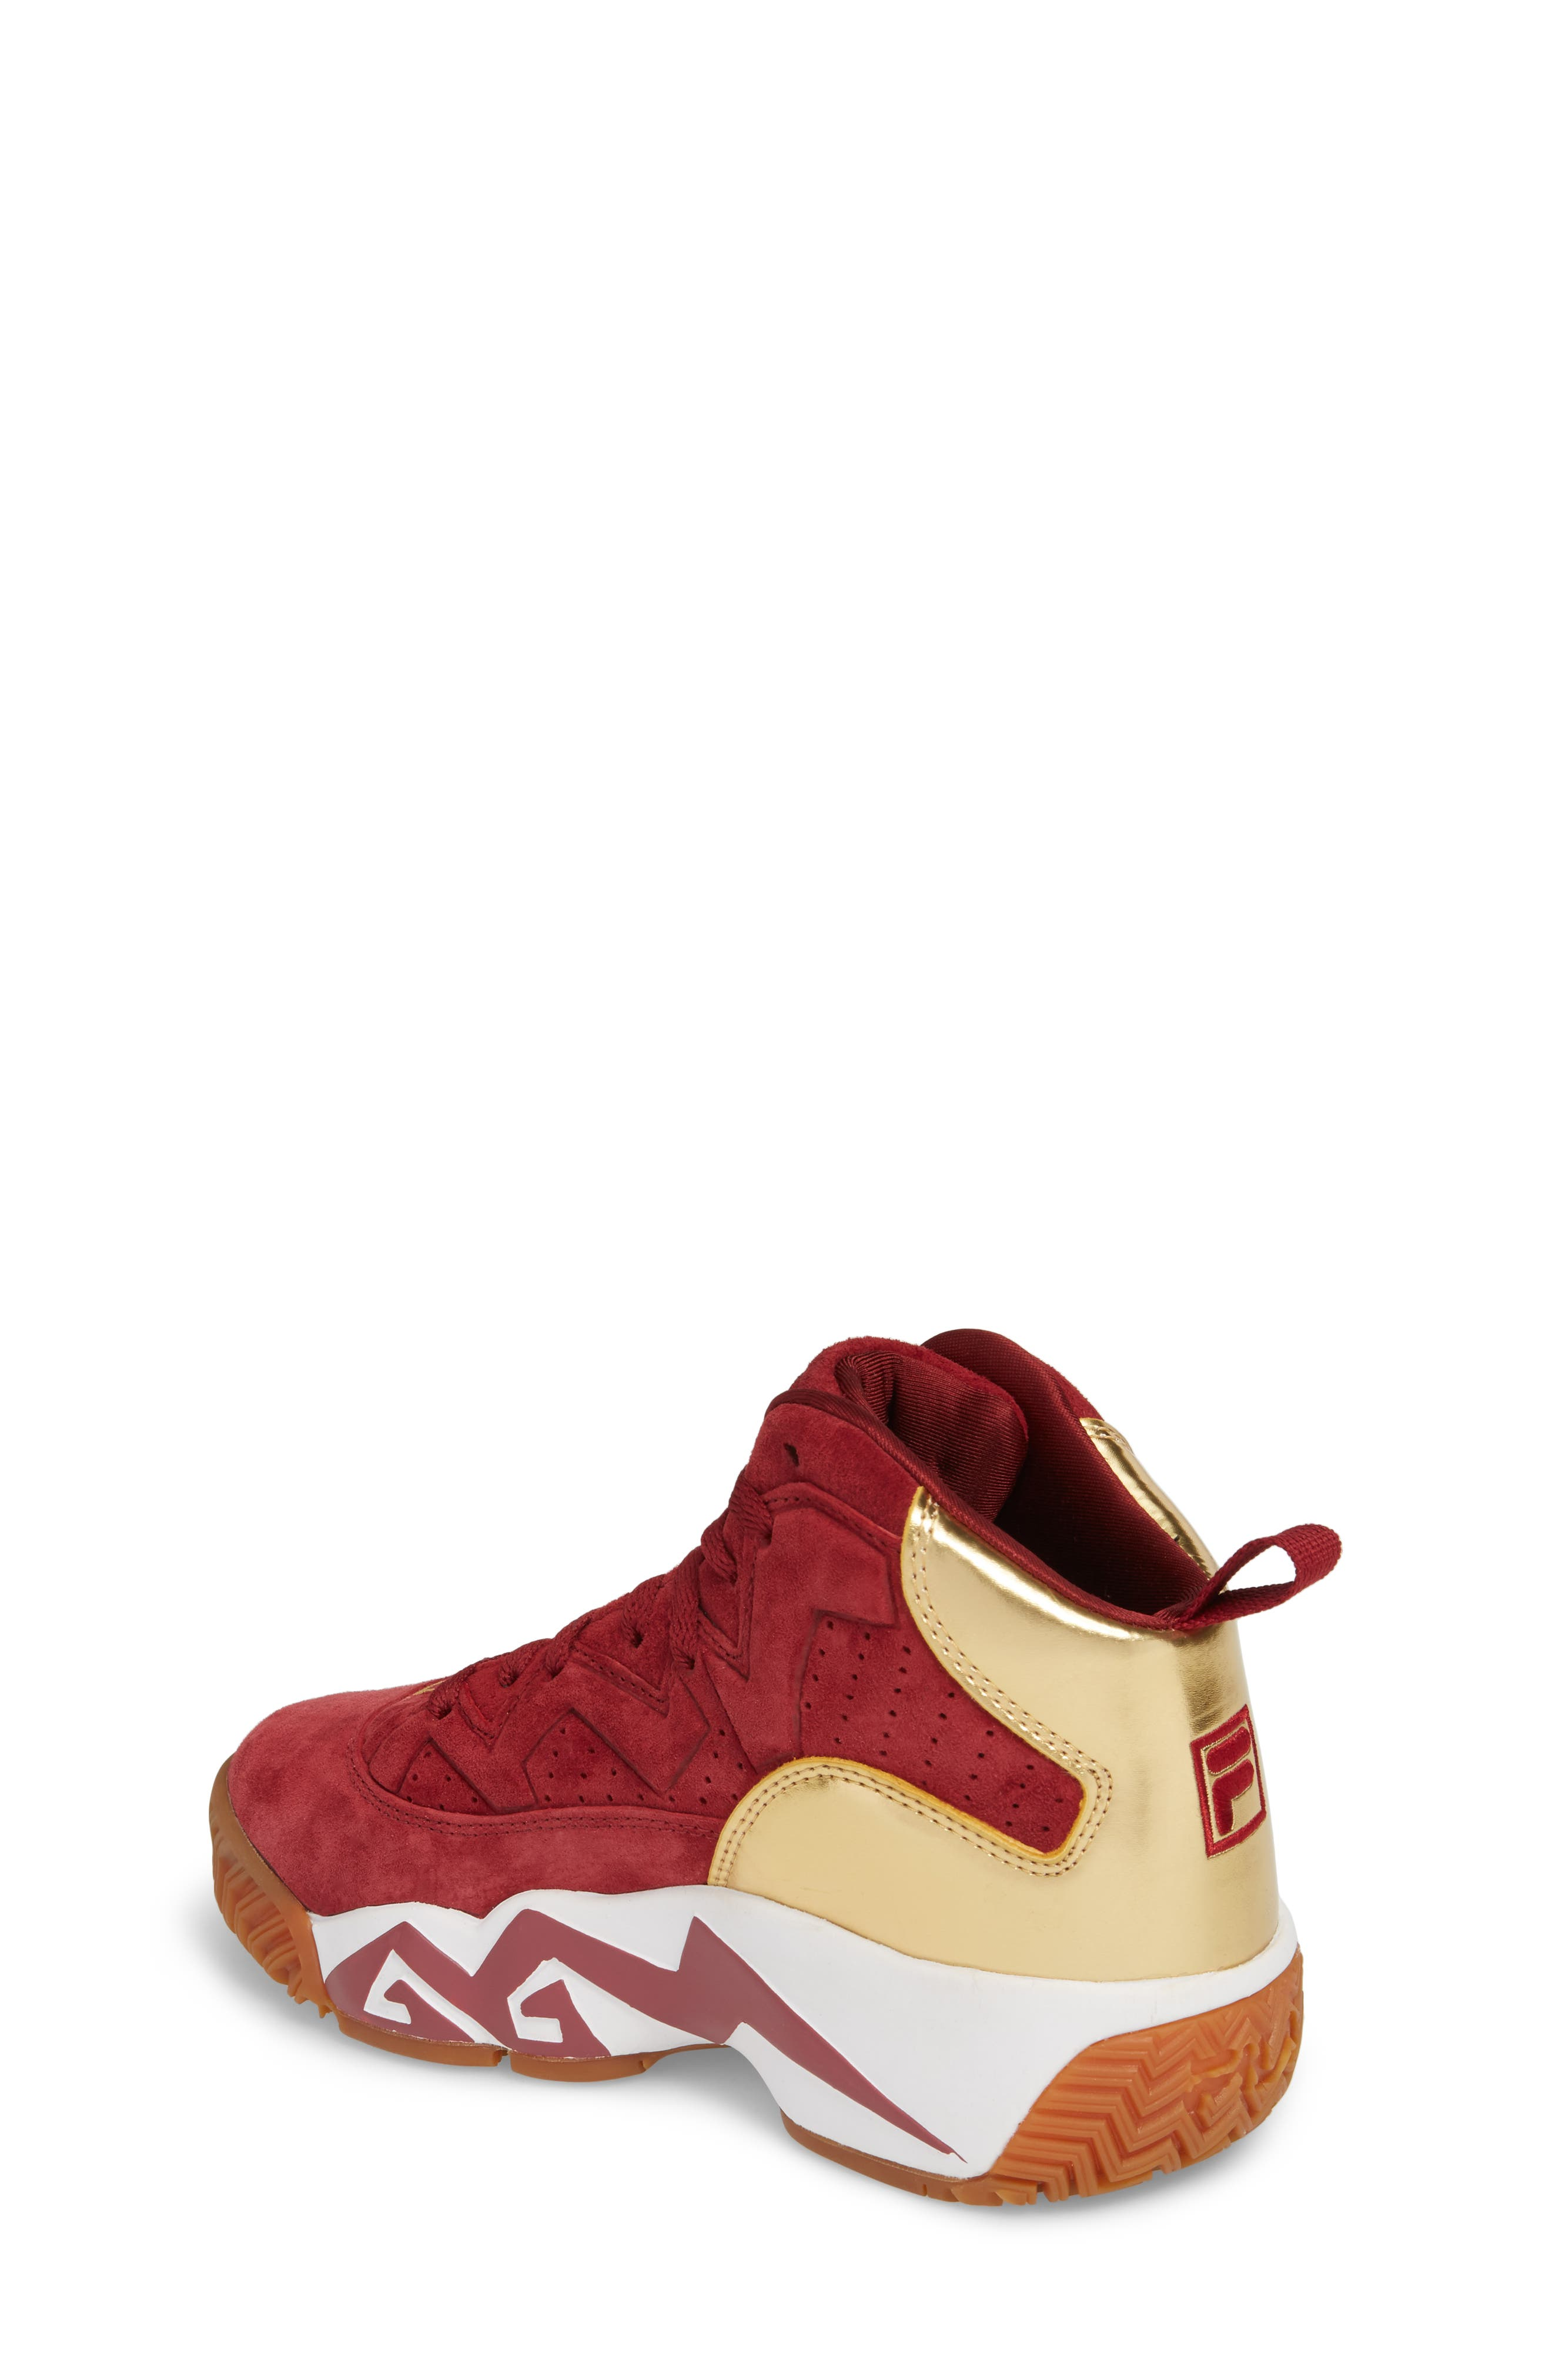 FILA, Heritage Sneaker, Alternate thumbnail 2, color, BIKING RED/ GOLD/ WHITE